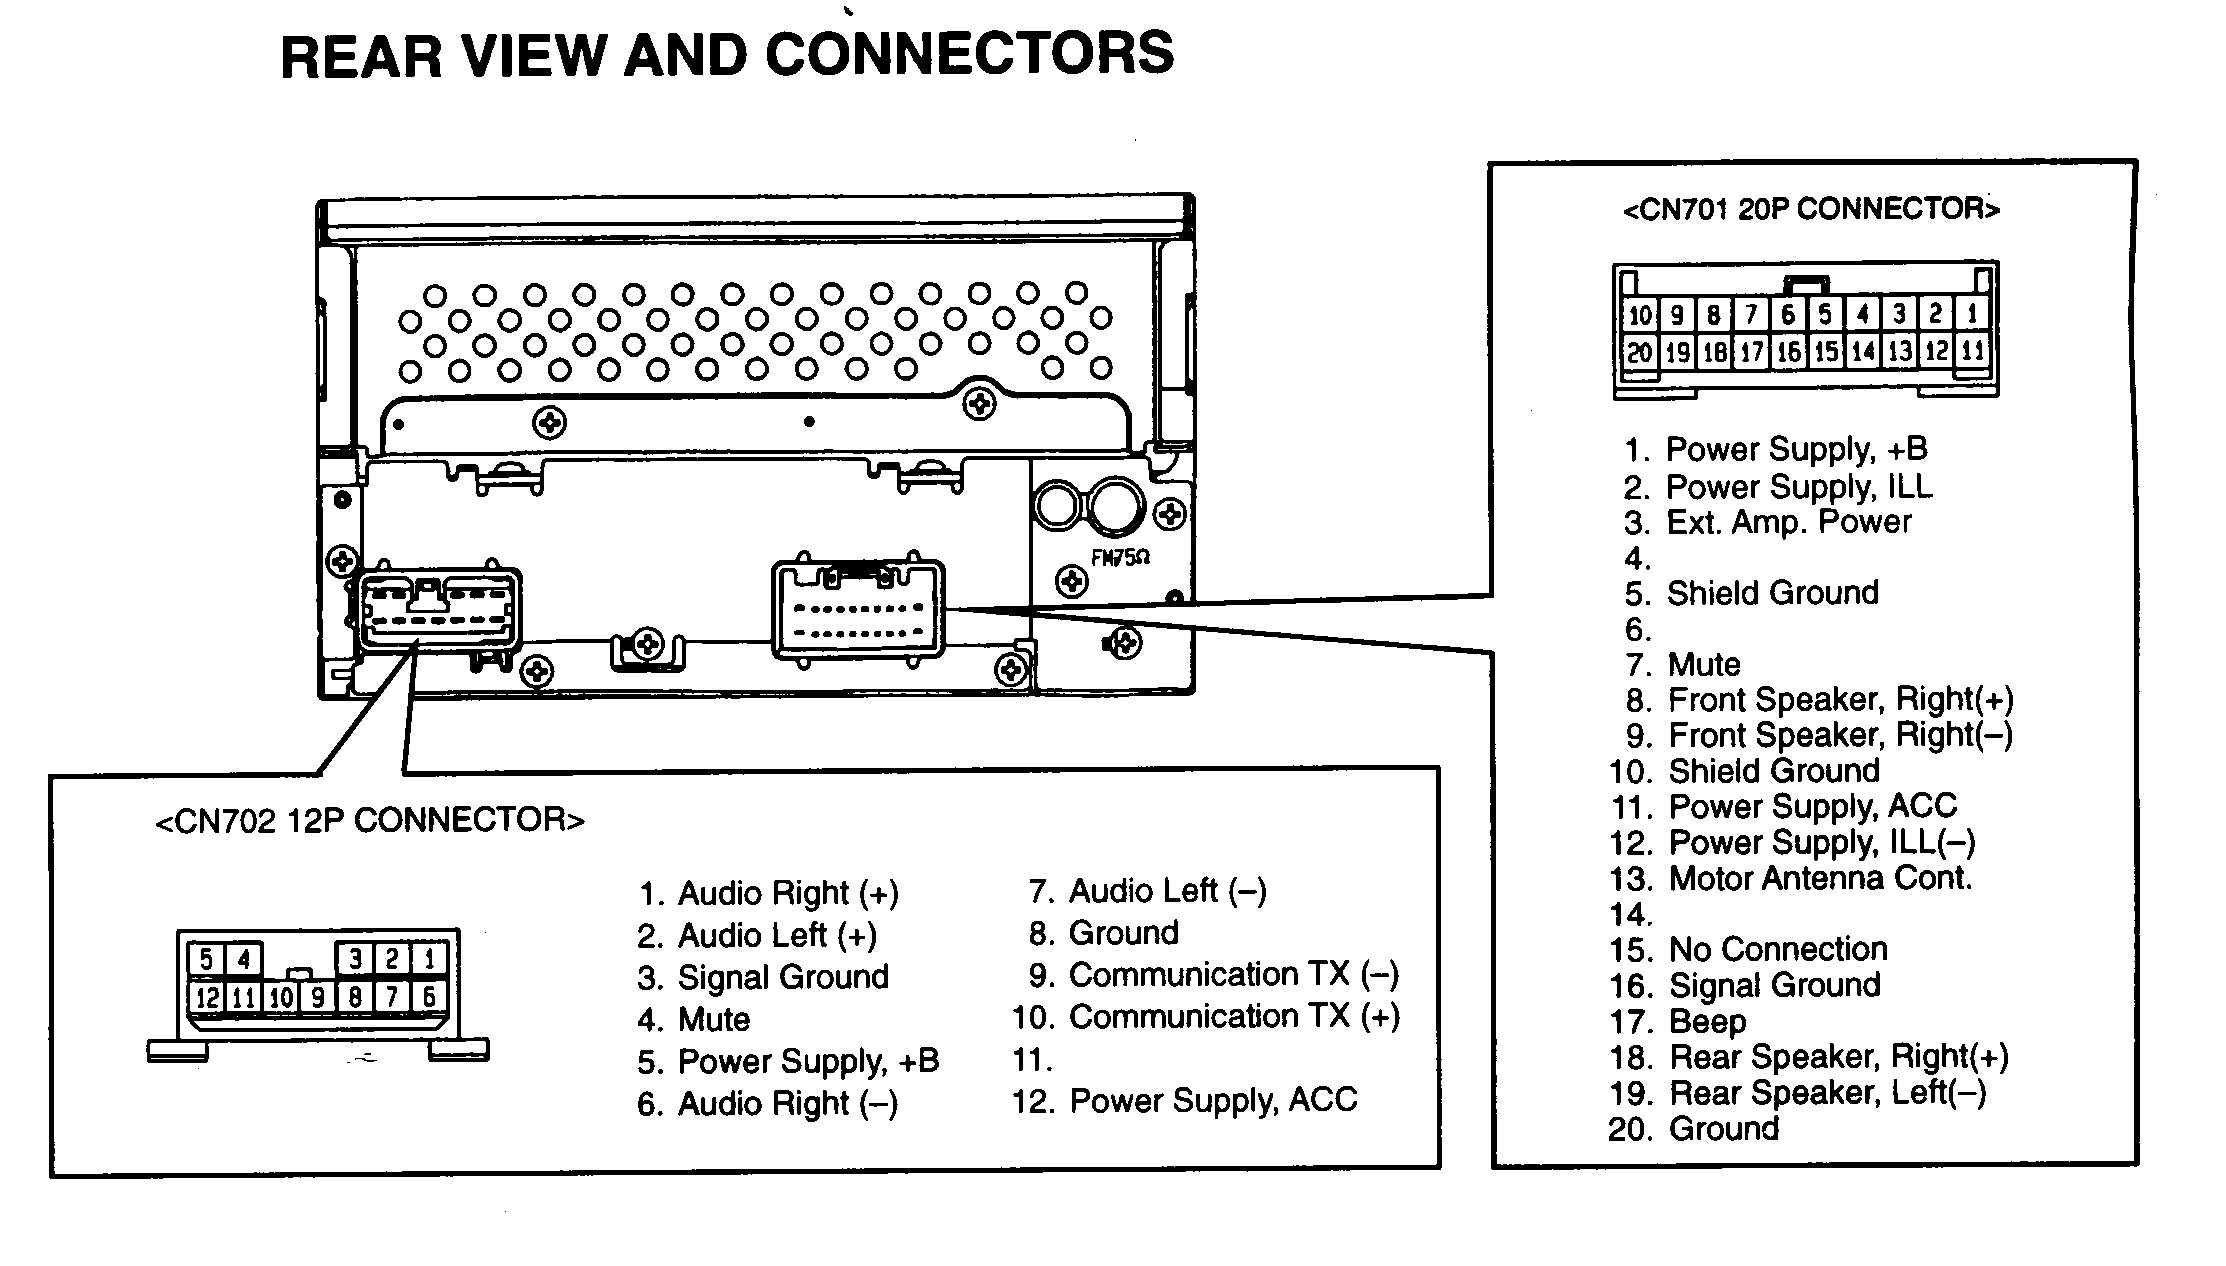 1998 ford F150 Pickup Truck Car Radio Wiring Diagram Diagram Showing You the Parts and Troubled area the Wiring Of 1998 ford F150 Pickup Truck Car Radio Wiring Diagram